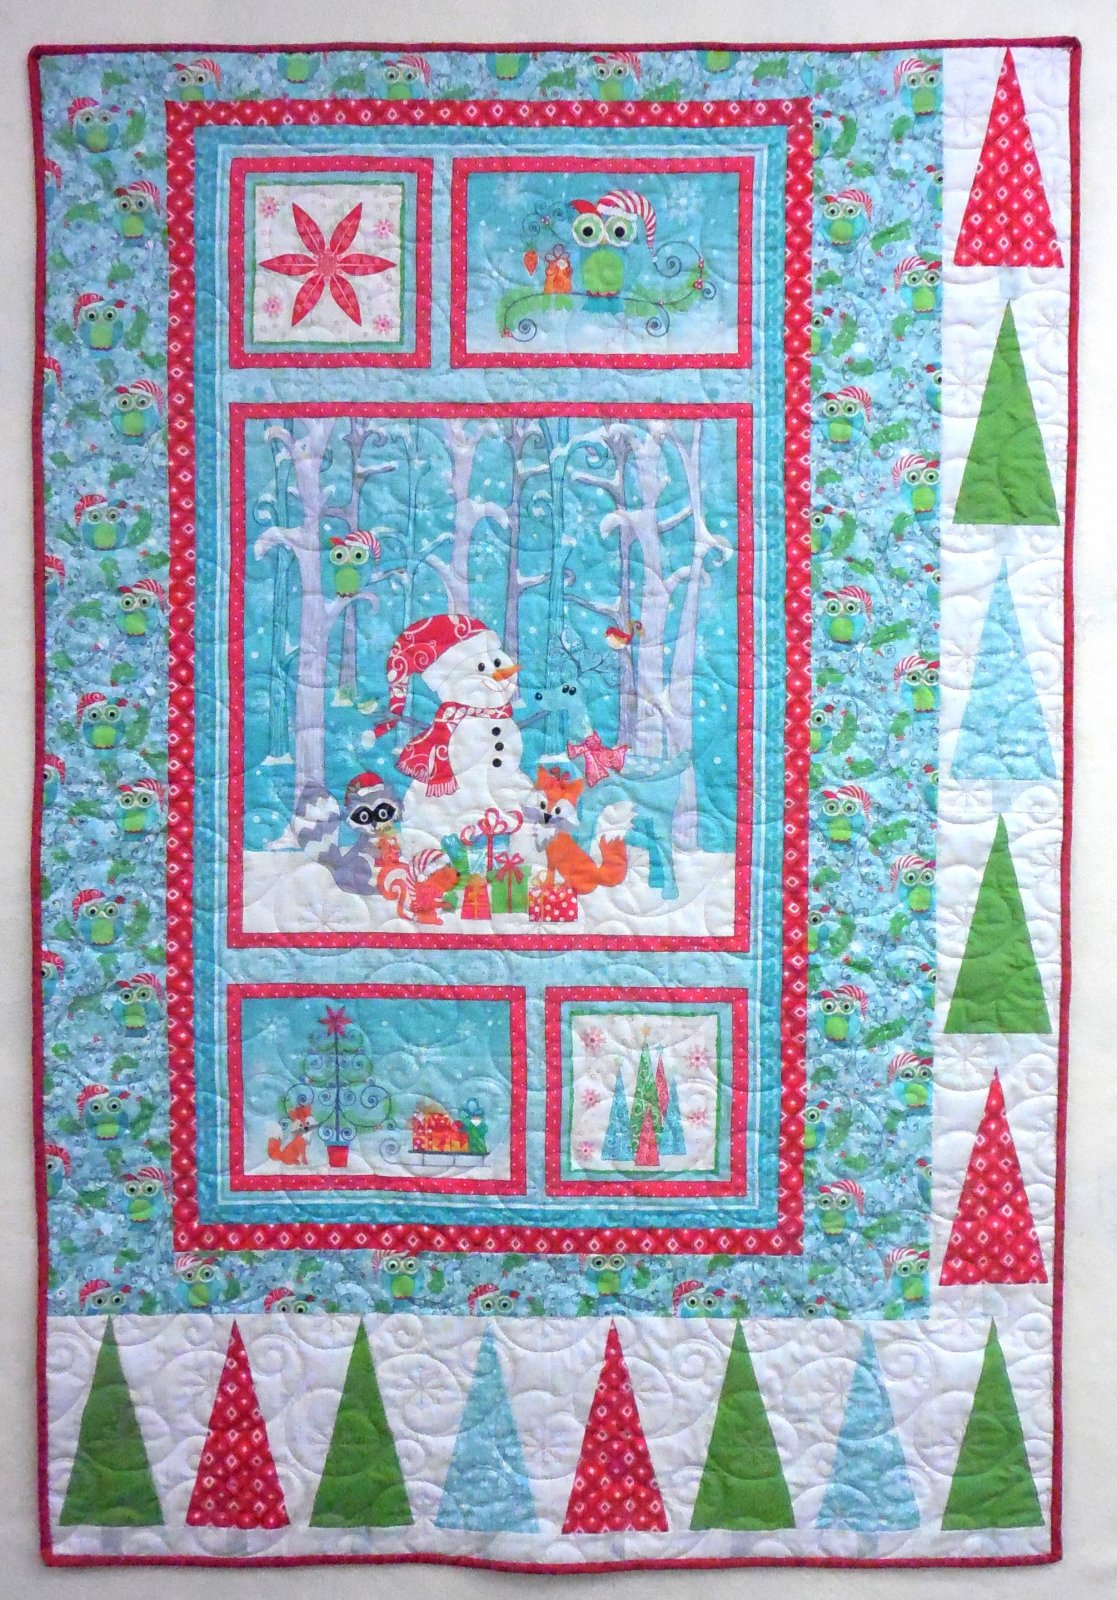 Frosty Forest Christmas Quilt Kit - 40 x 60